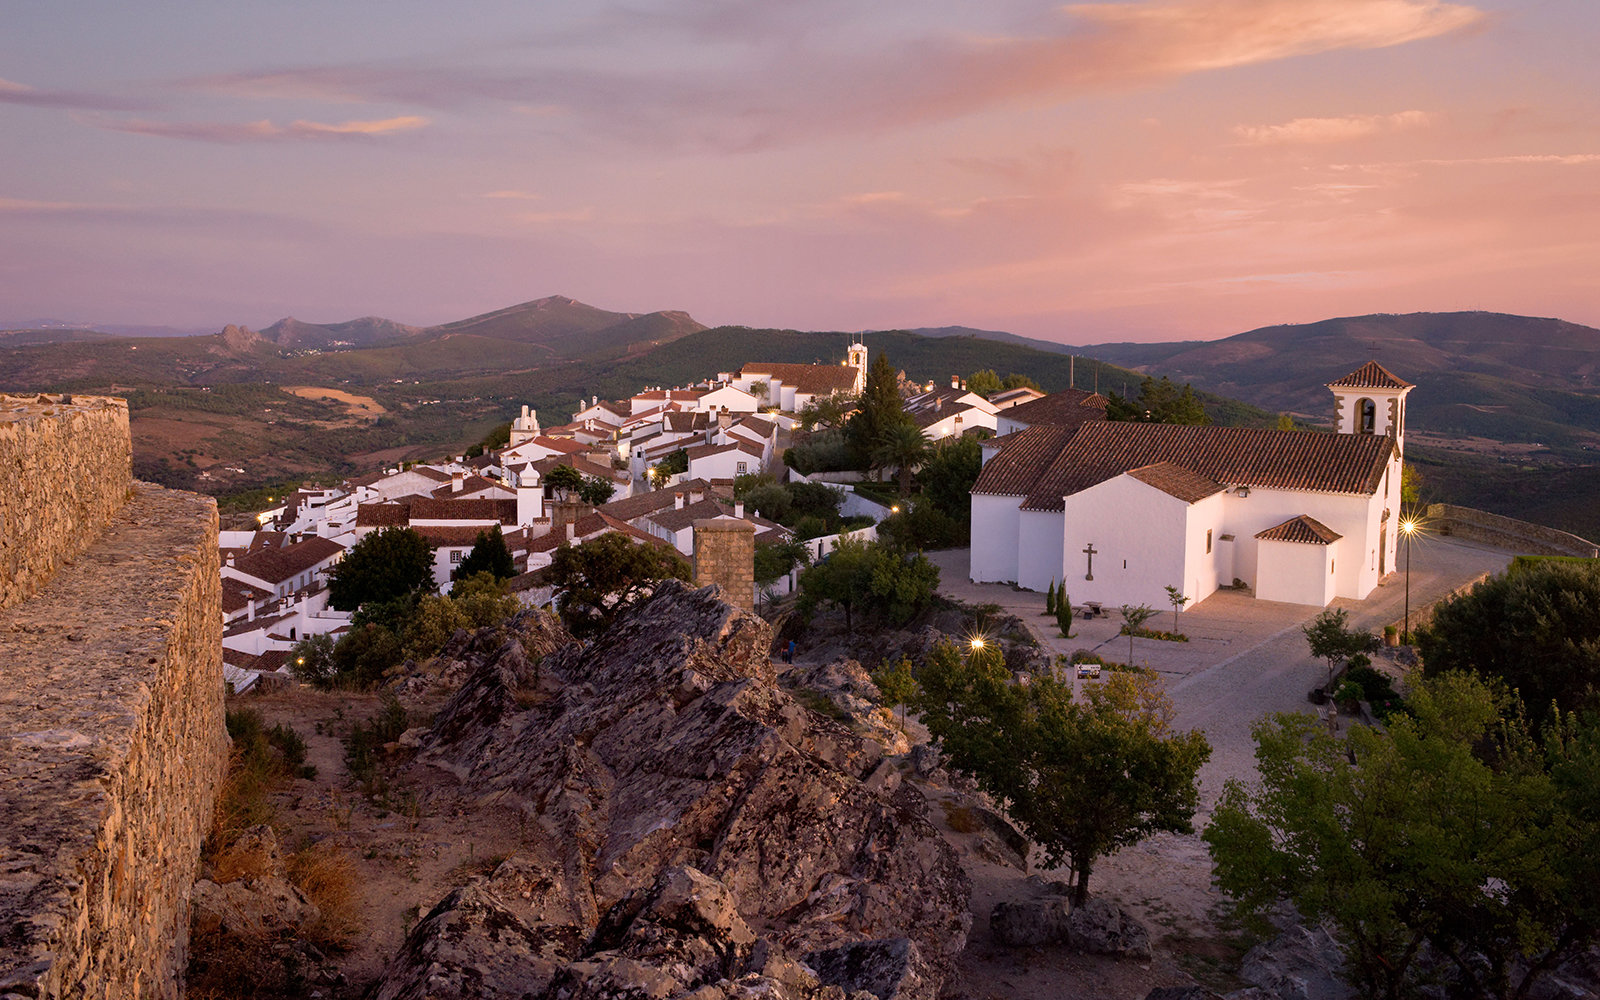 Portugal, the Alentejo, Marvao town at sunset